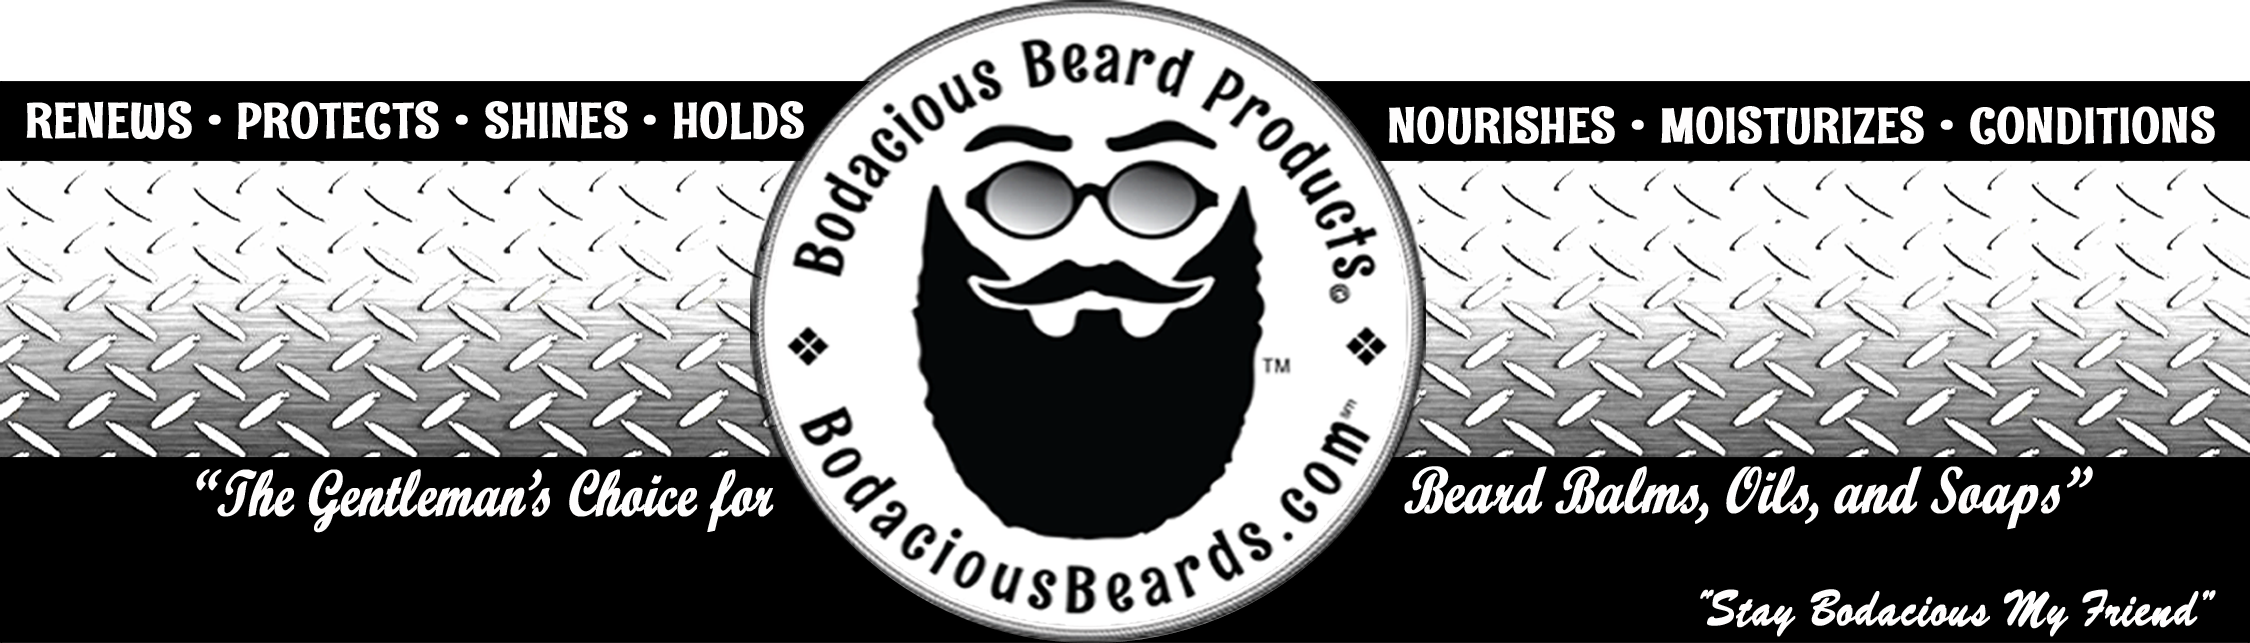 Bodacious Beard Products